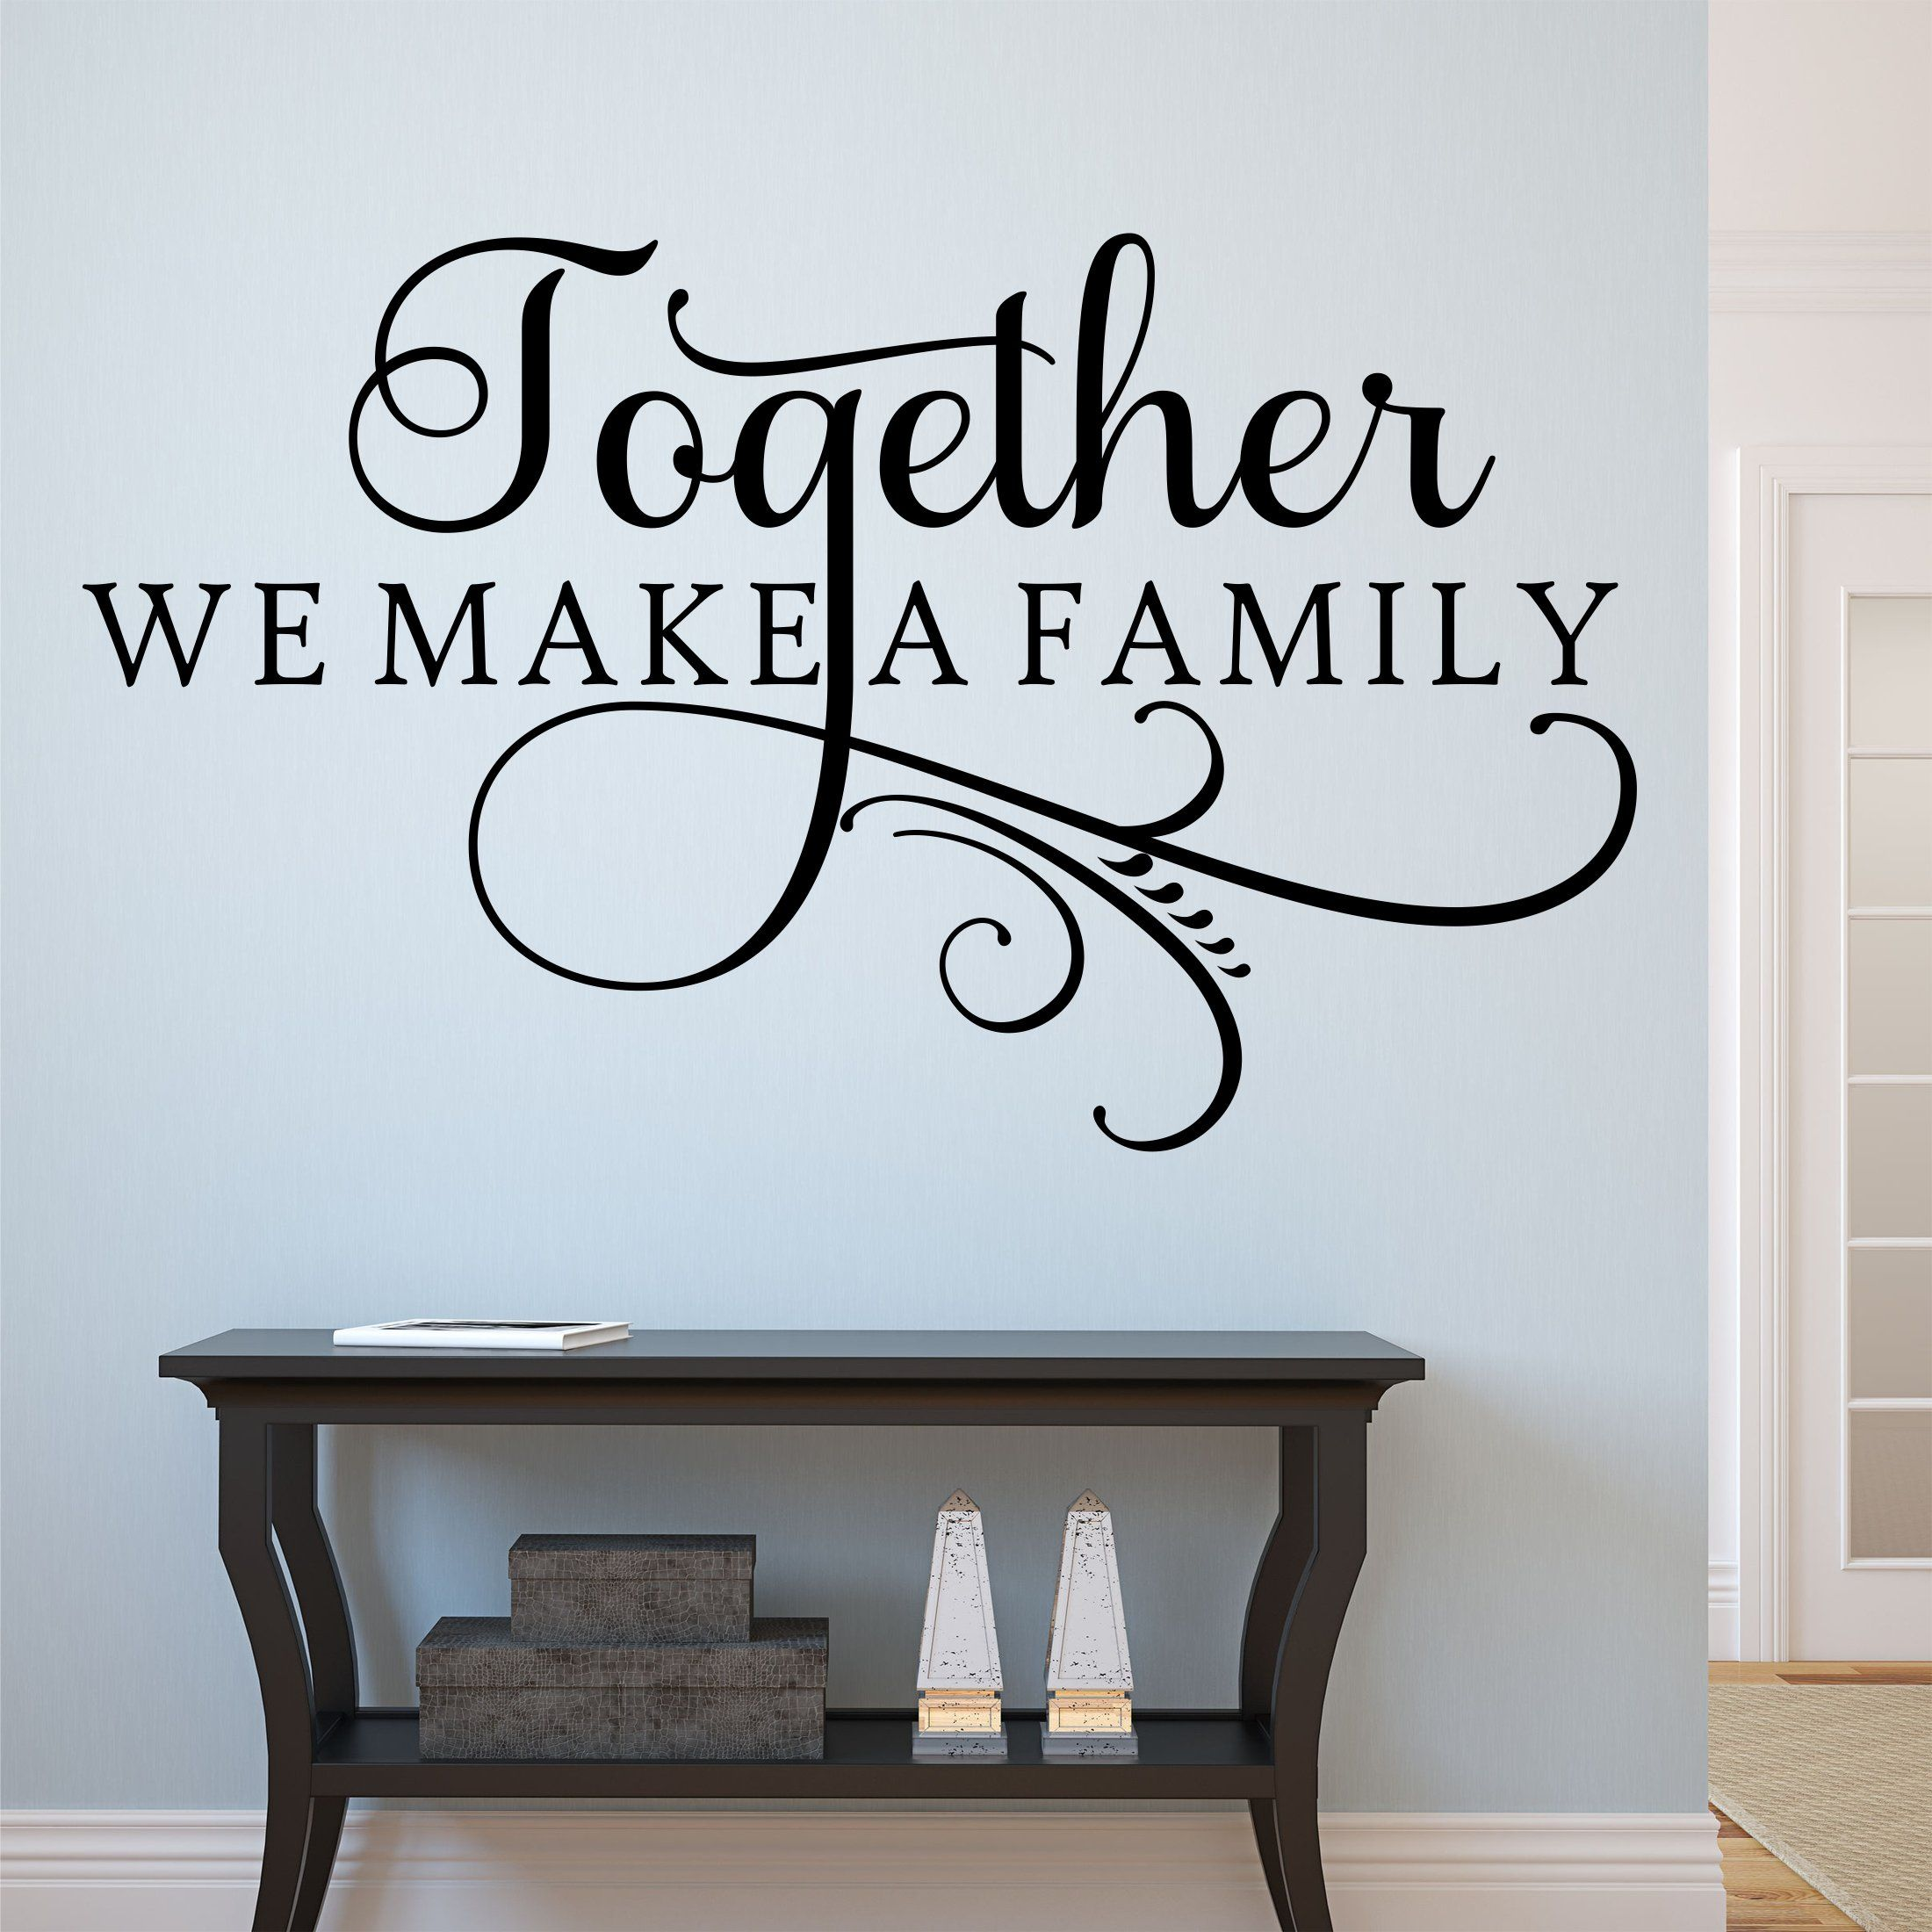 Home Wall Decal Together We Make A Family Swirl Accent Letter